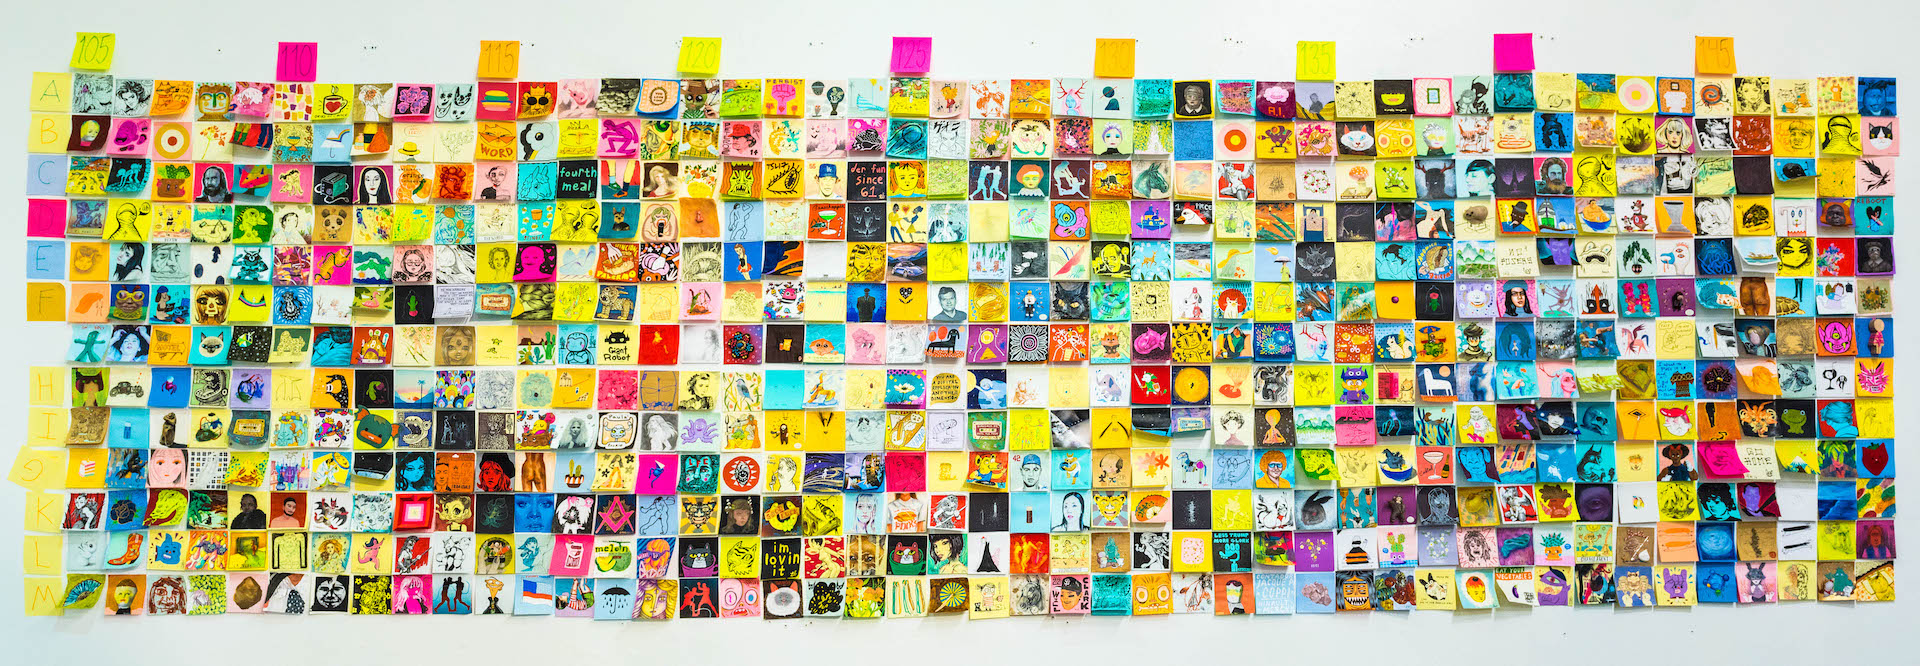 wall 2 - click to view